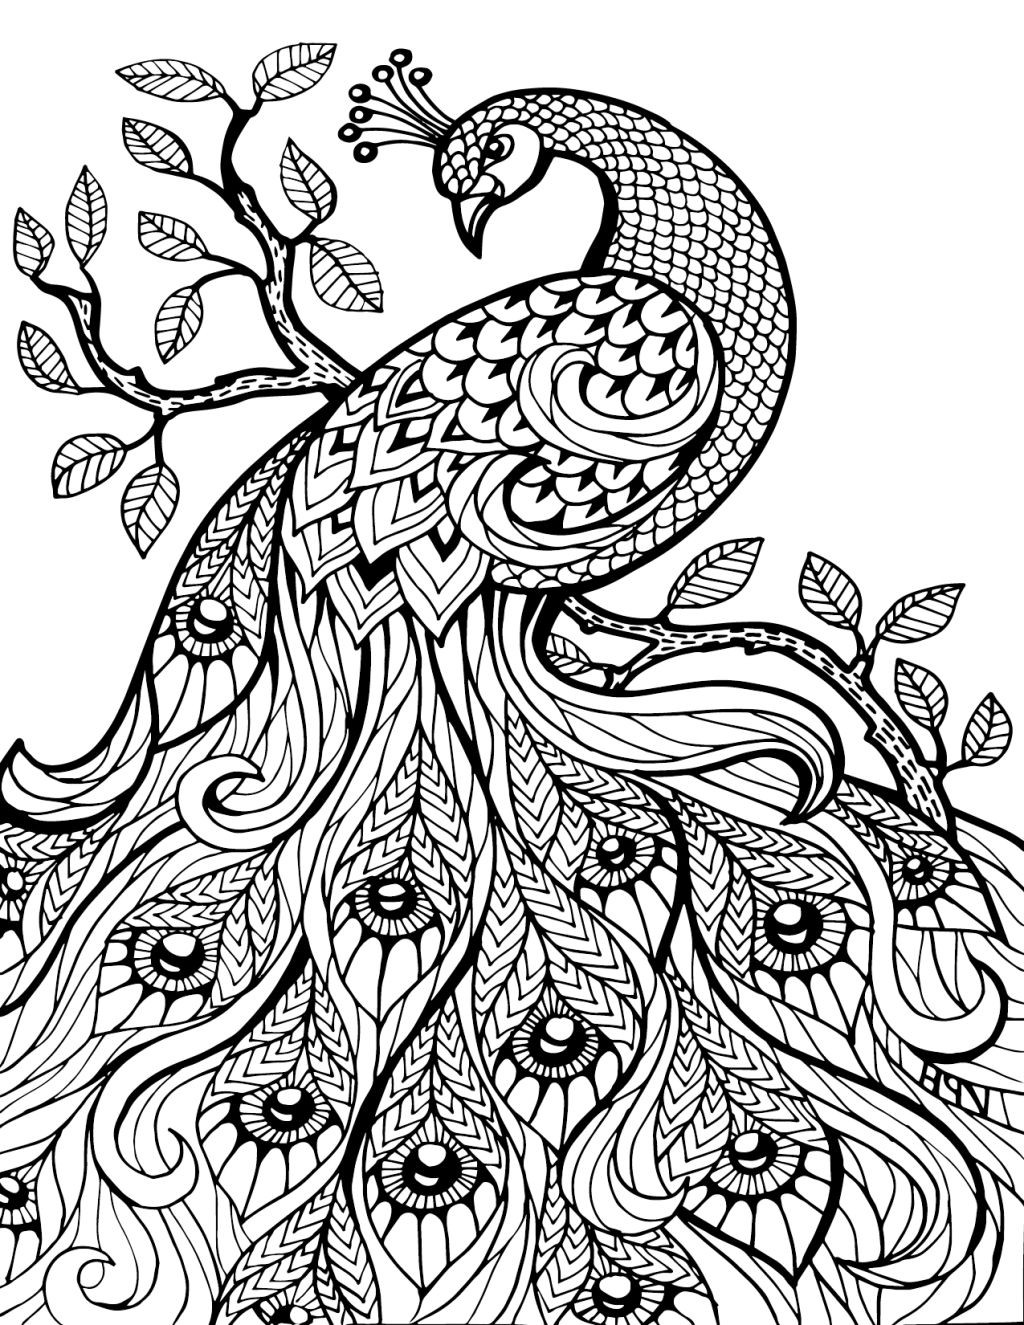 Best ideas about Pretty Coloring Pages For Adults . Save or Pin 45 Pretty Coloring Pages All Pretty Flower Colouring Now.